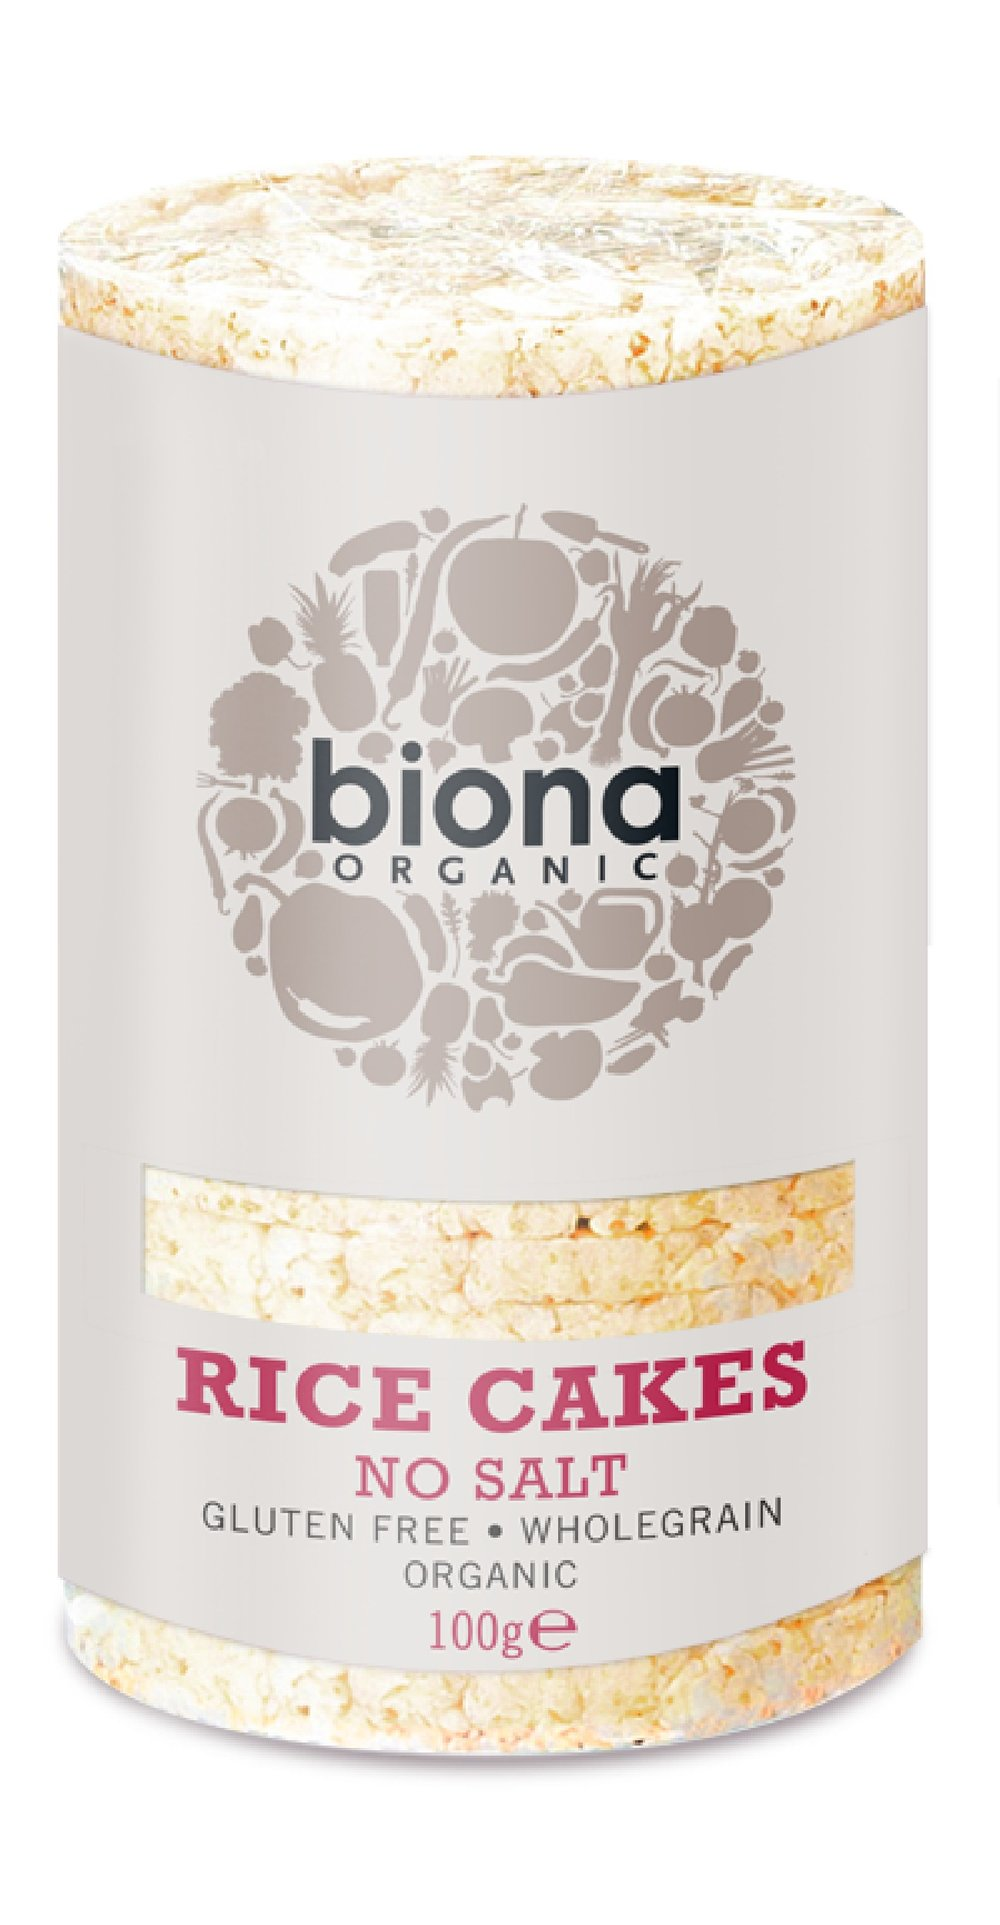 Biona_Rice Cakes_no salt.JPG